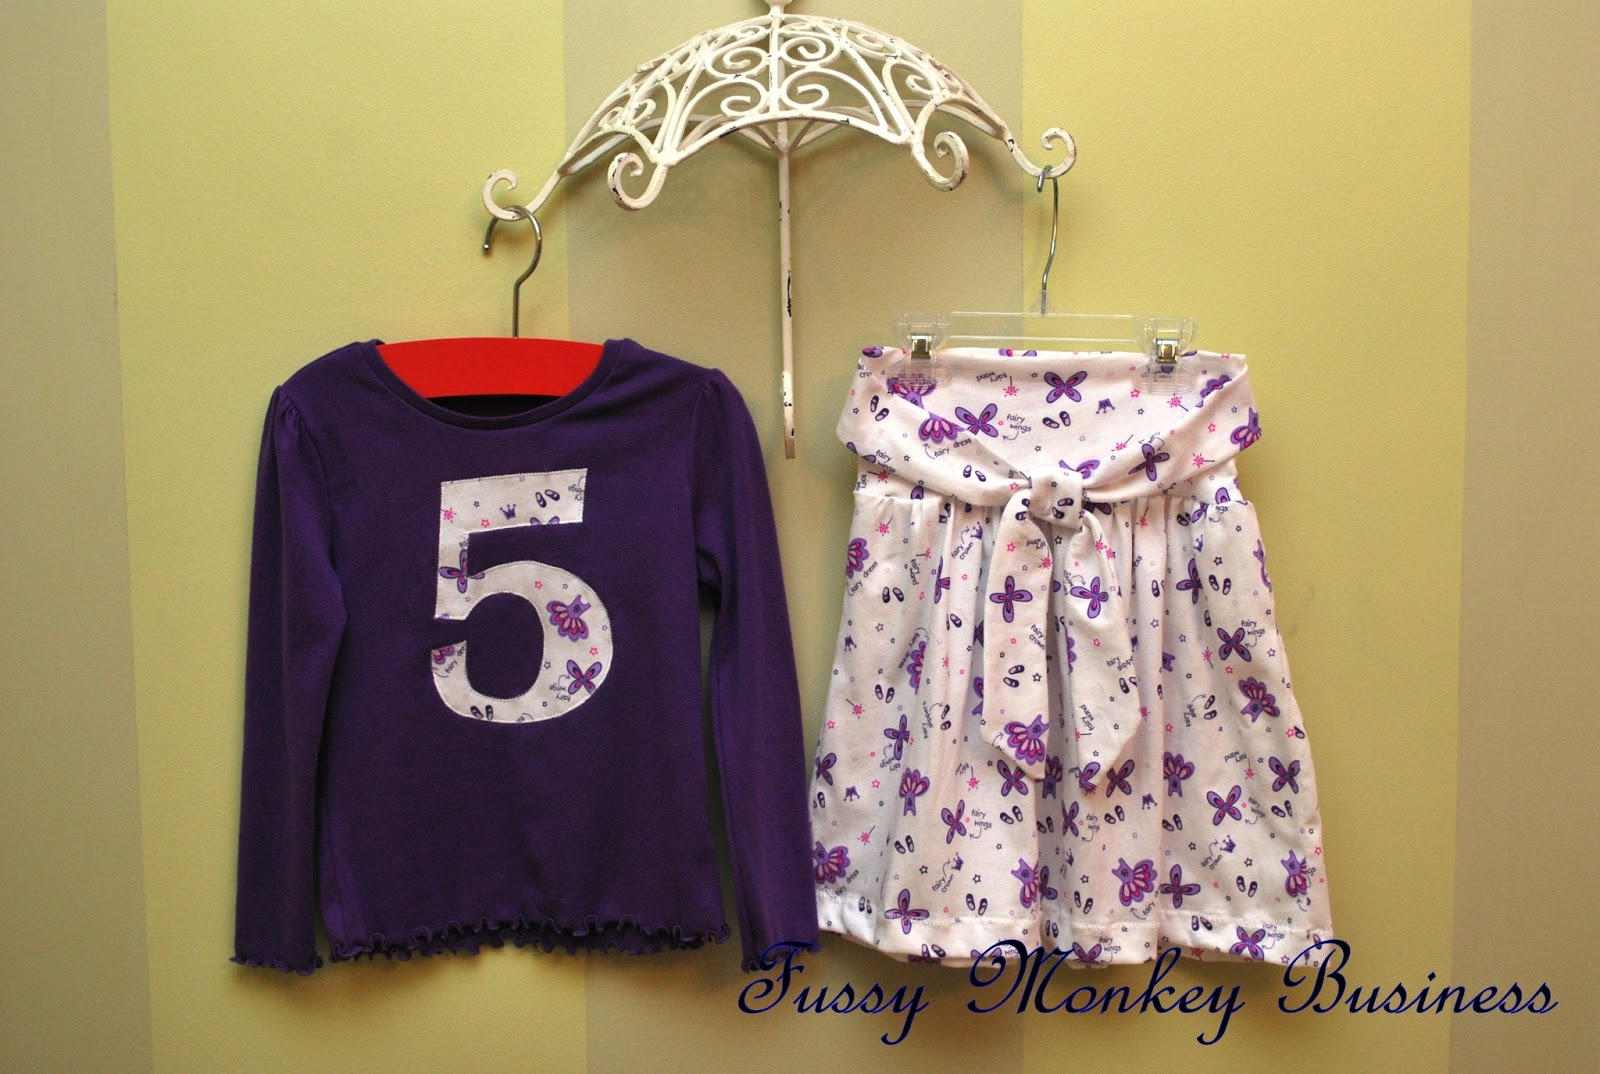 Fussy Monkey Business 5 Year Old Birthday Outfit